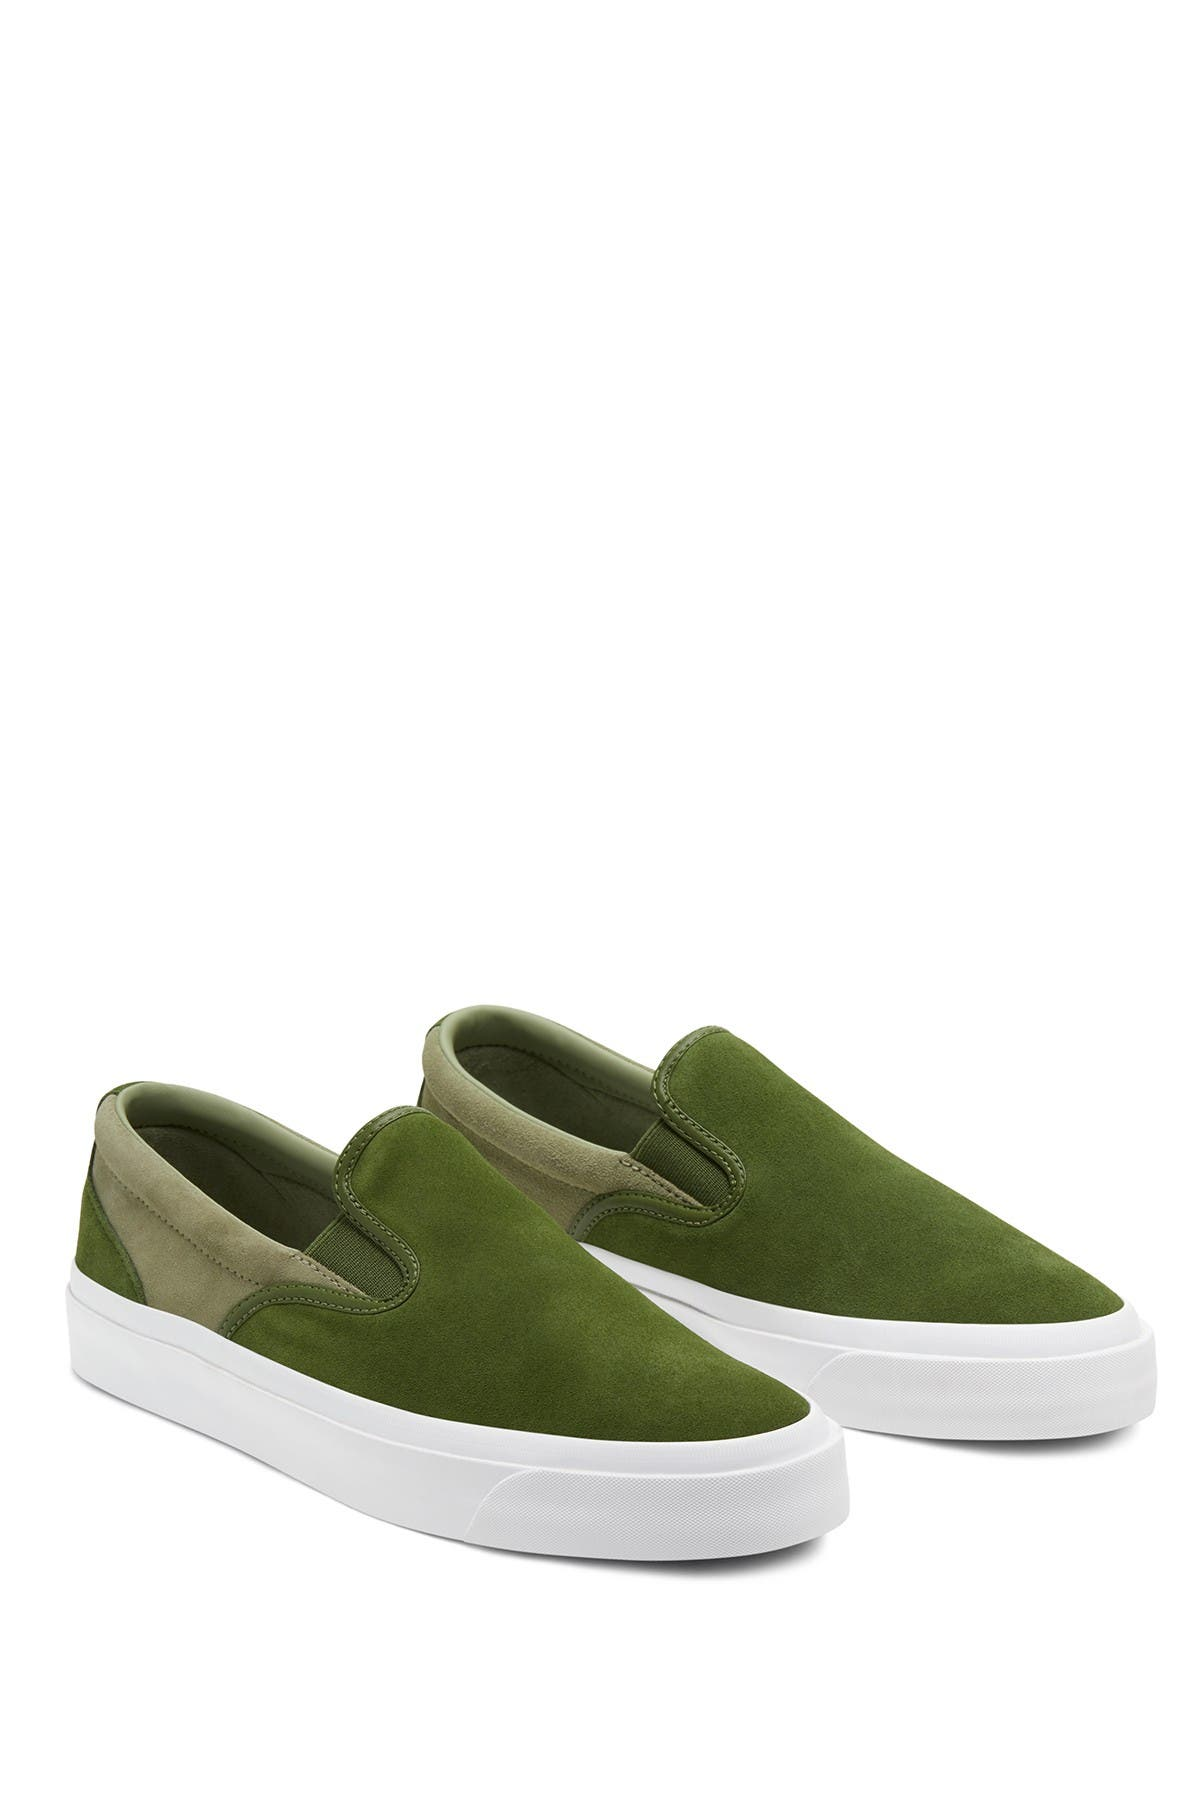 Image of Converse One Star CC Slip-On Pro Sneaker